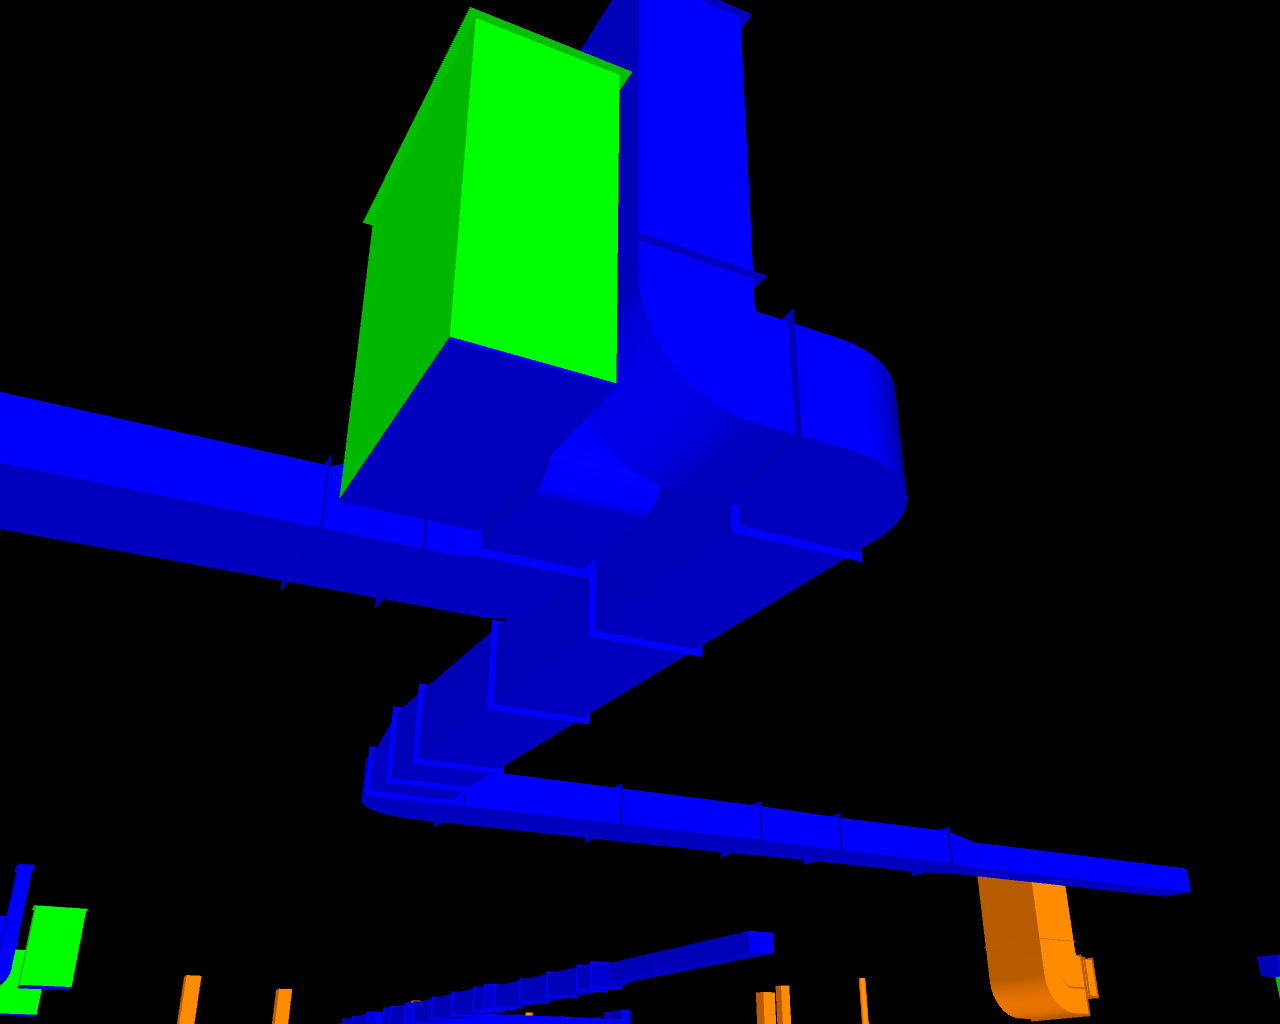 Finished BIM model drawn from 3D scan.